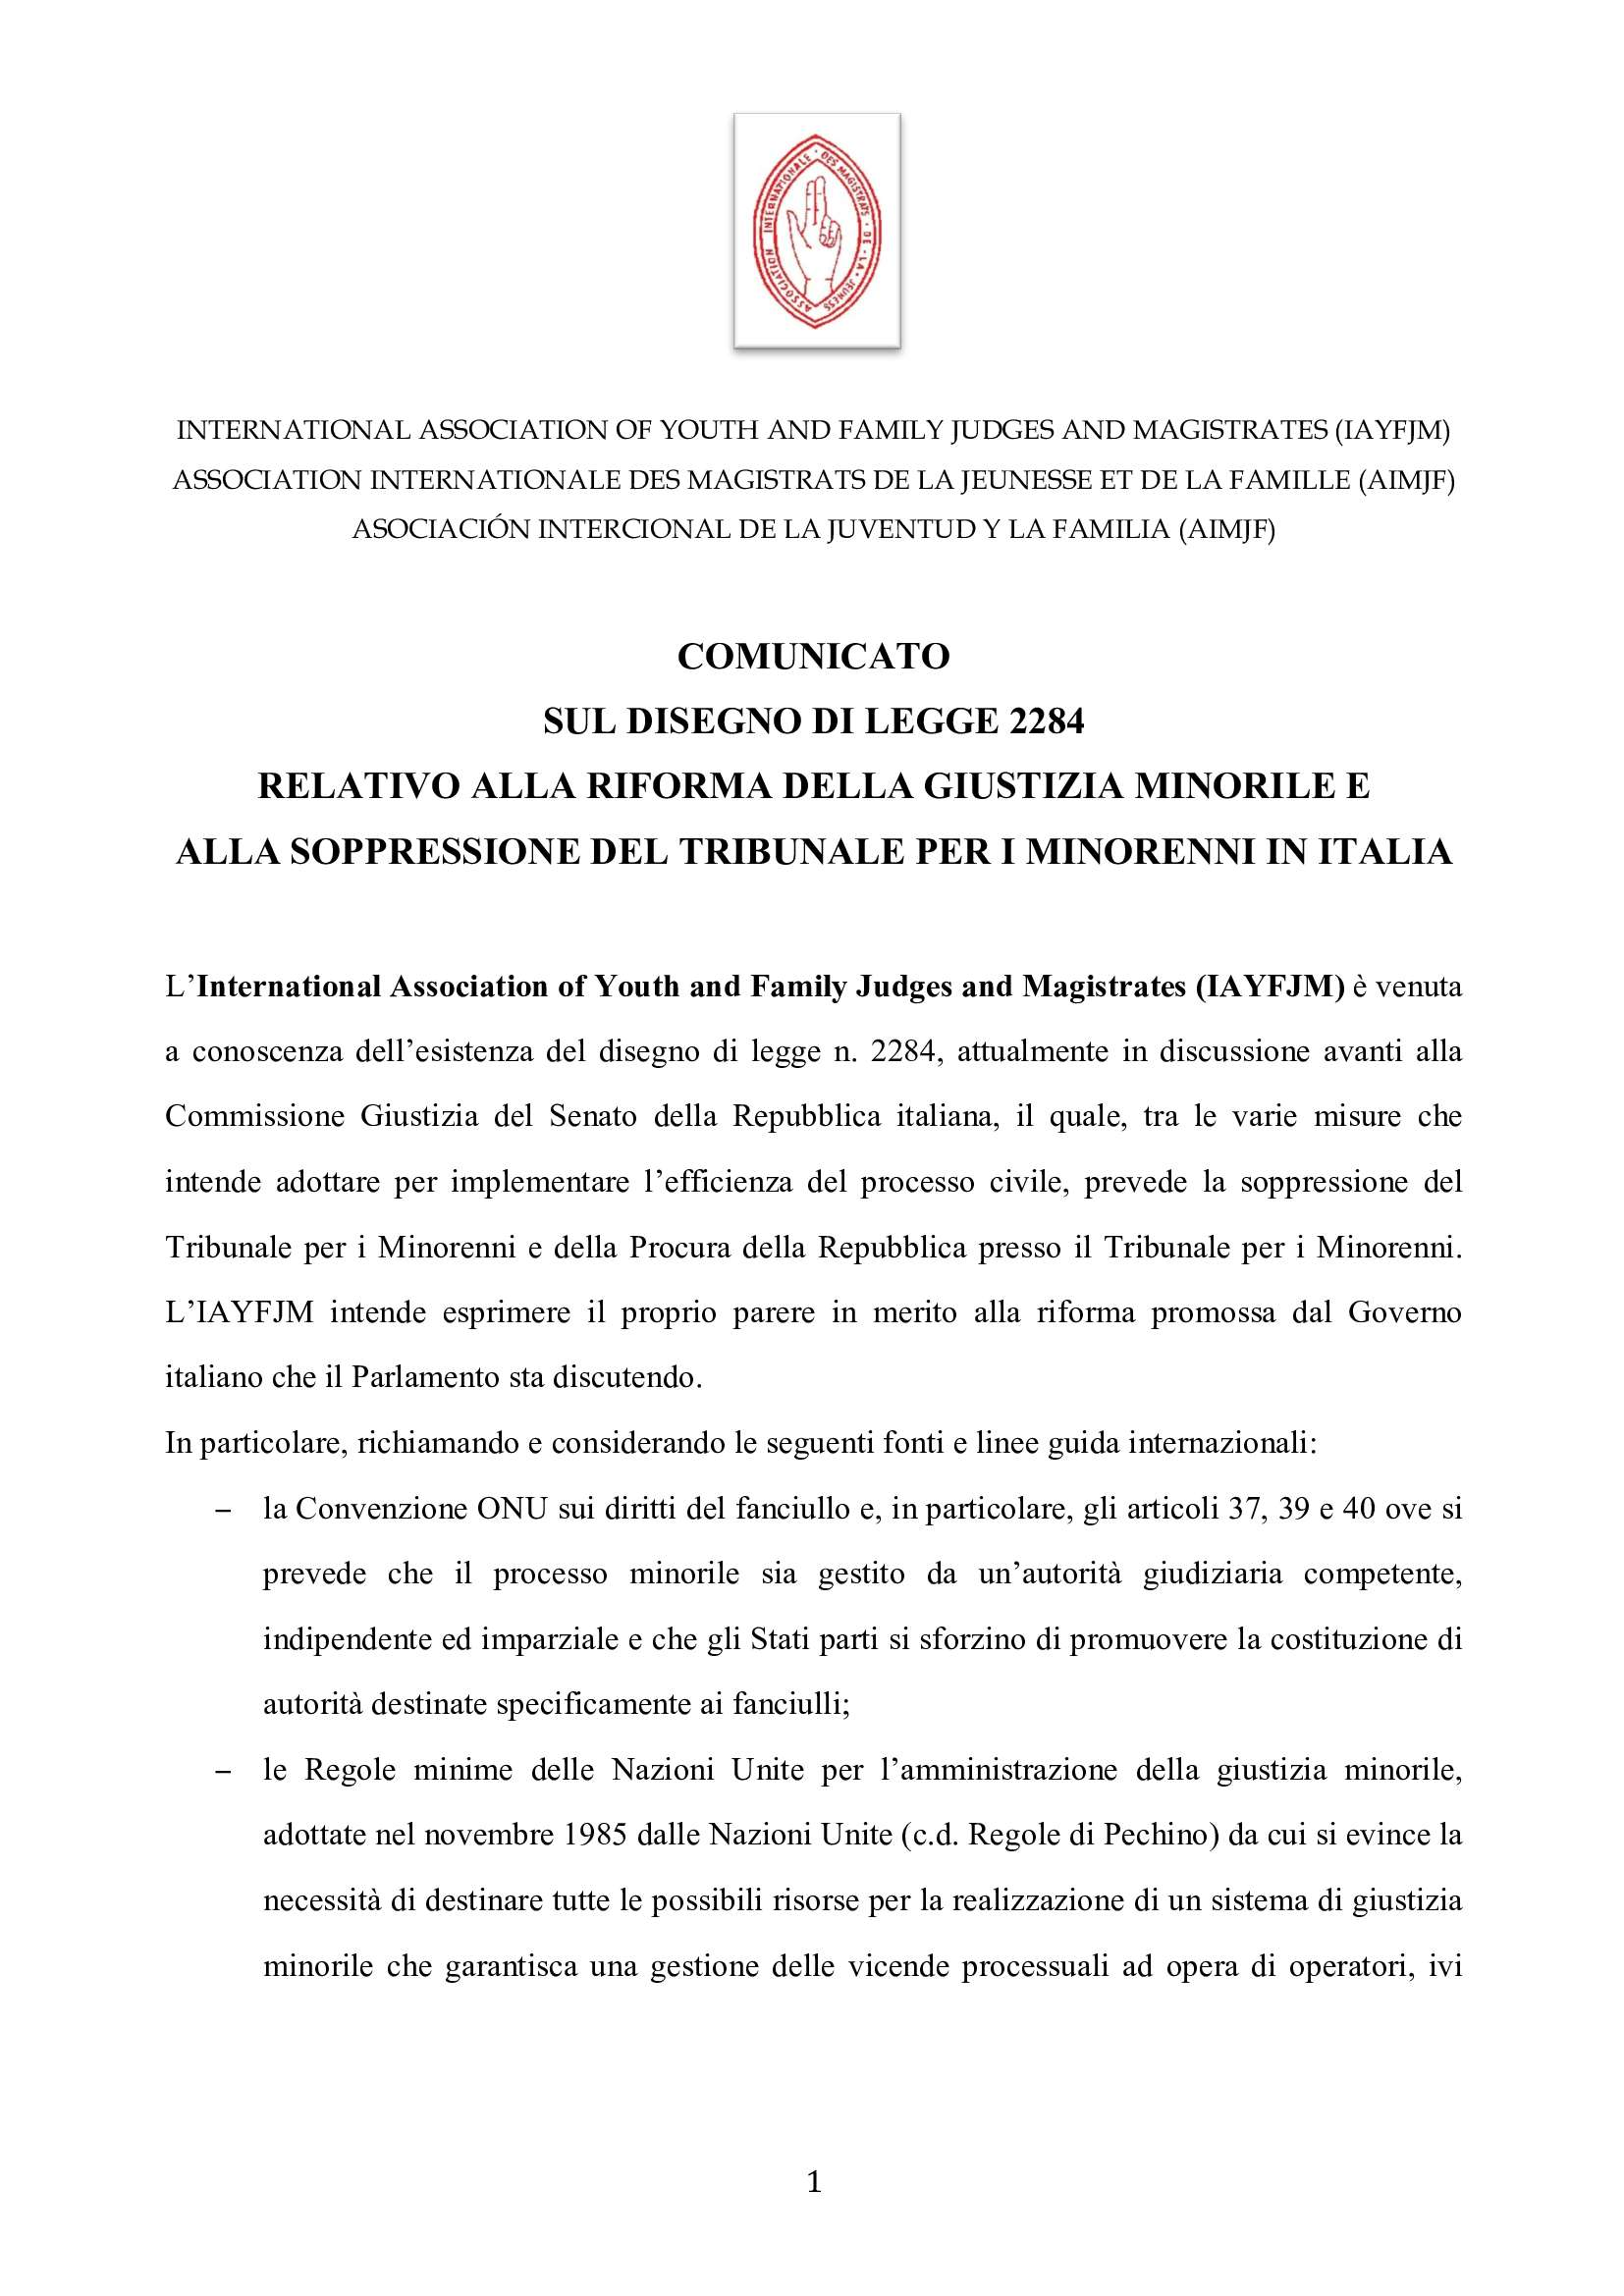 IAYFJM Statement on the Italian Juvenile Justice R 000